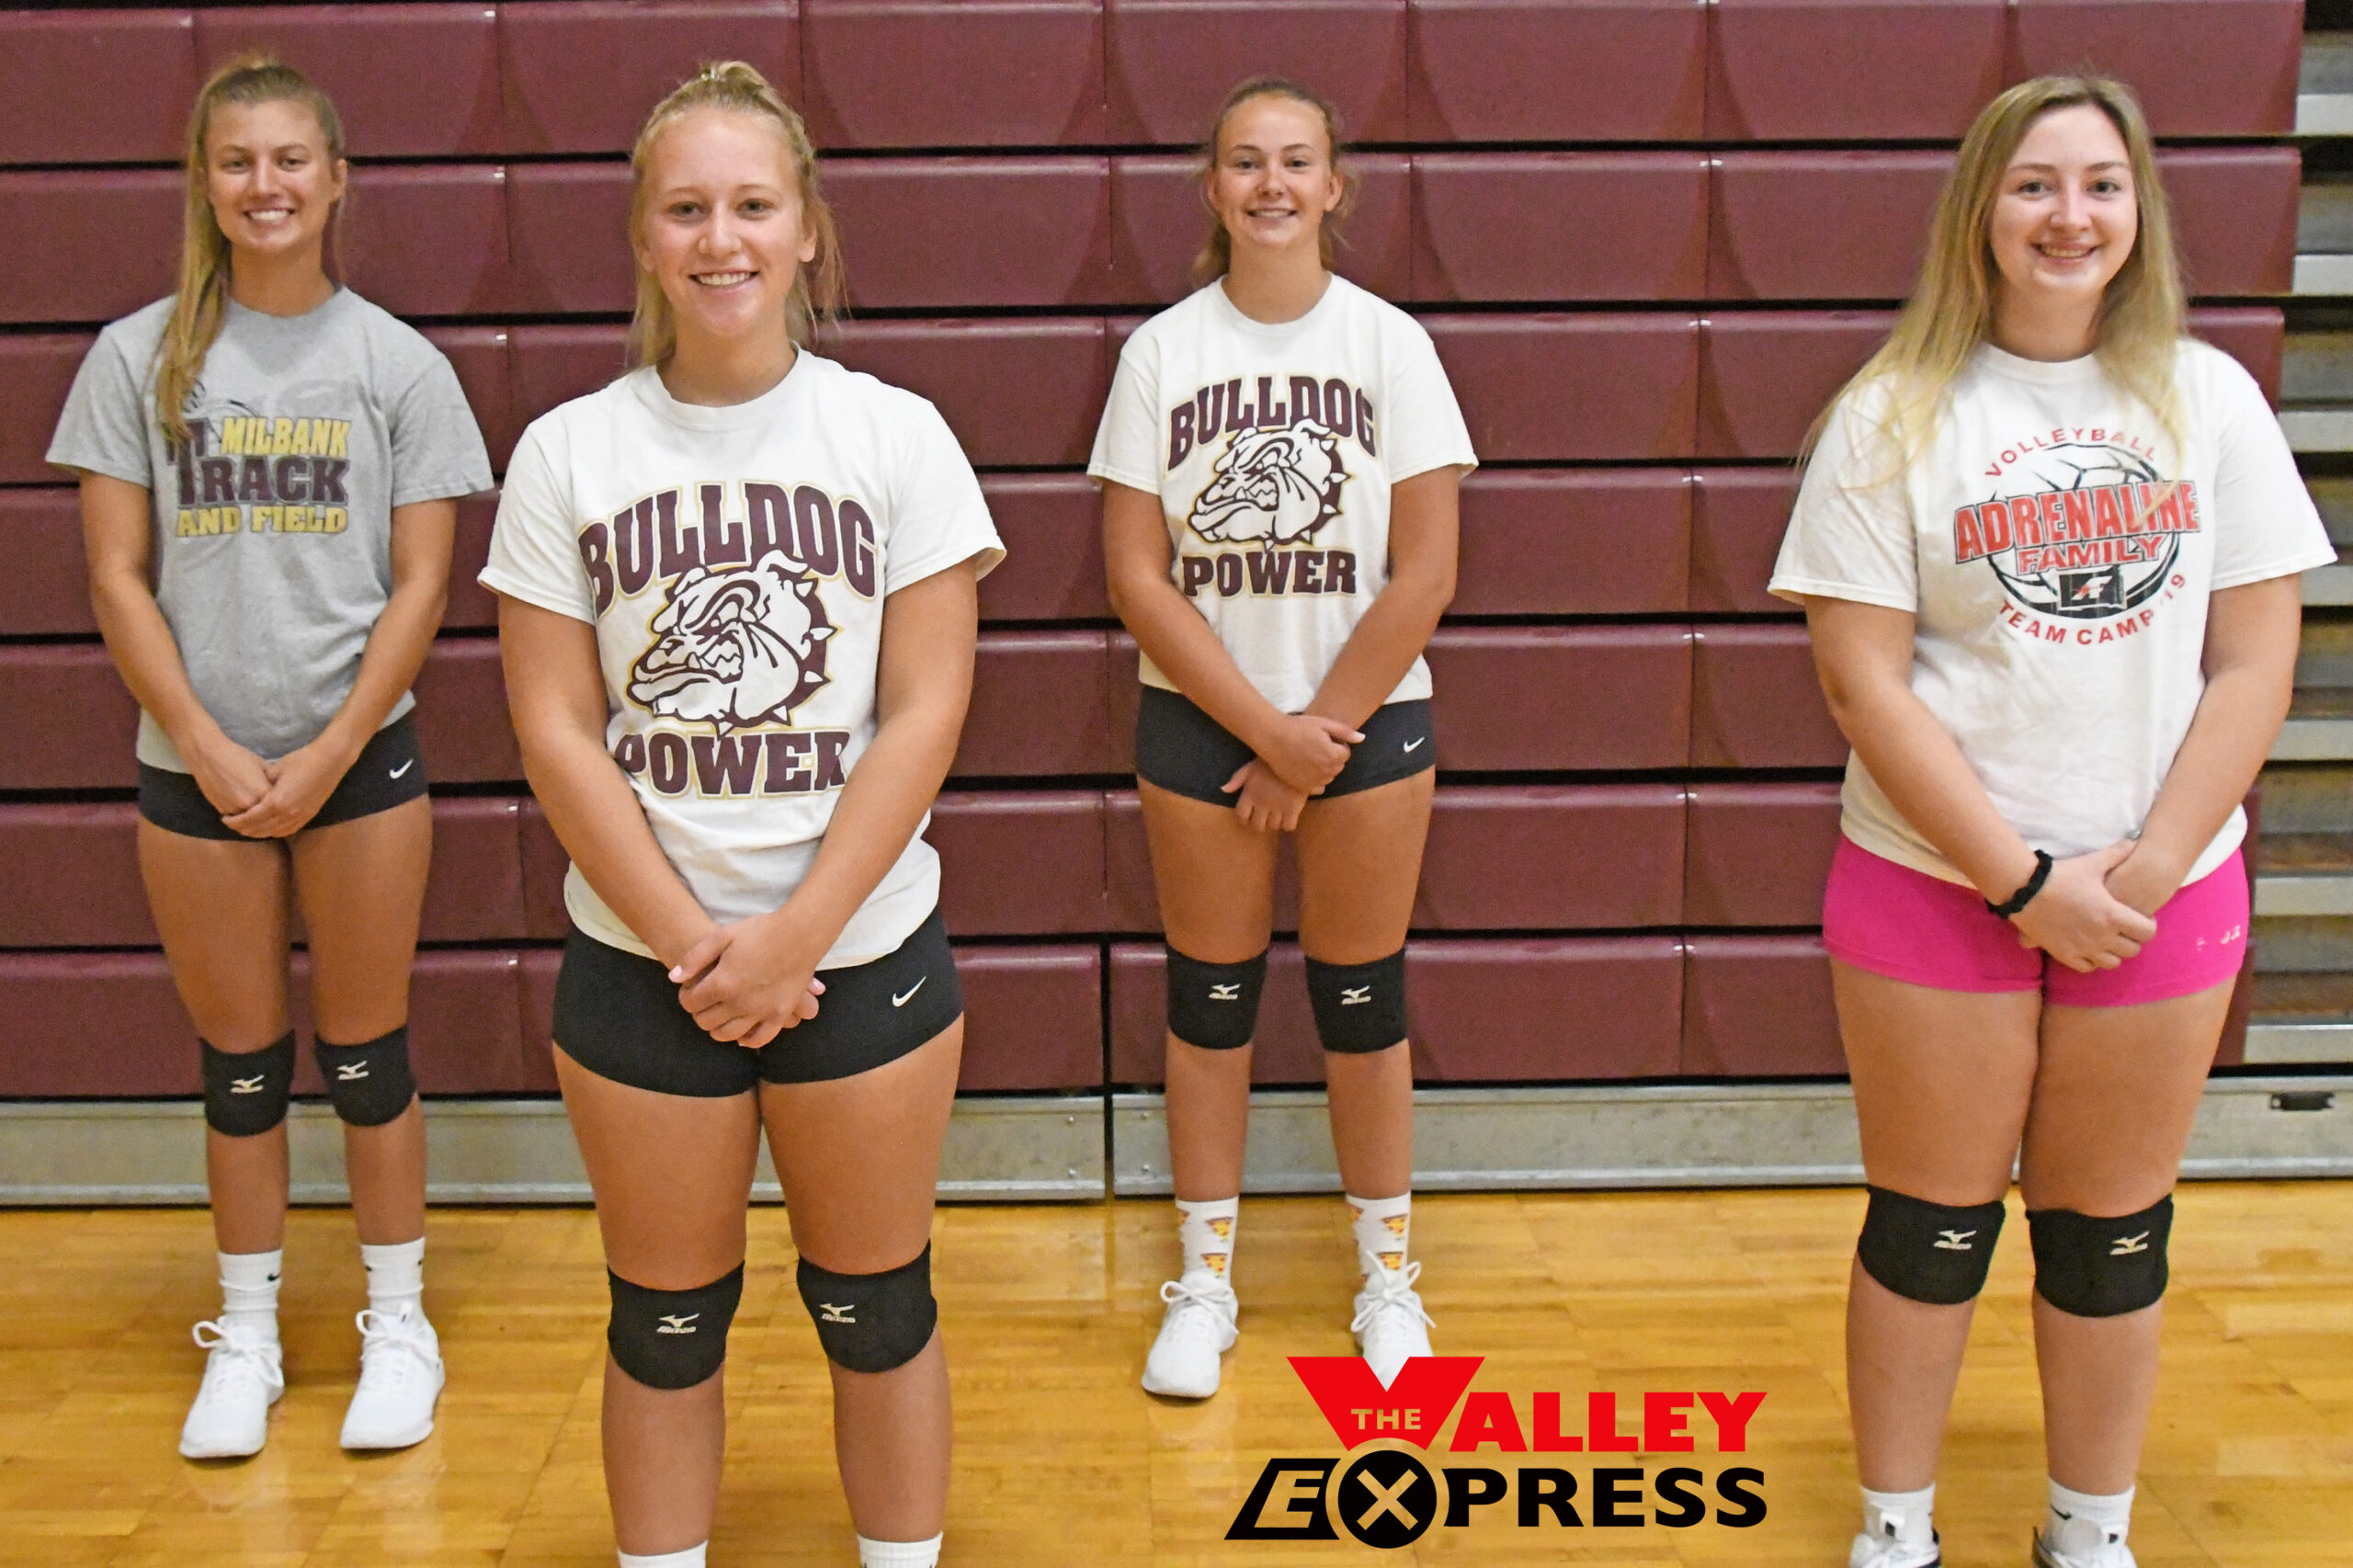 Lady Bulldogs Pumped for 2020 Volleyball Season